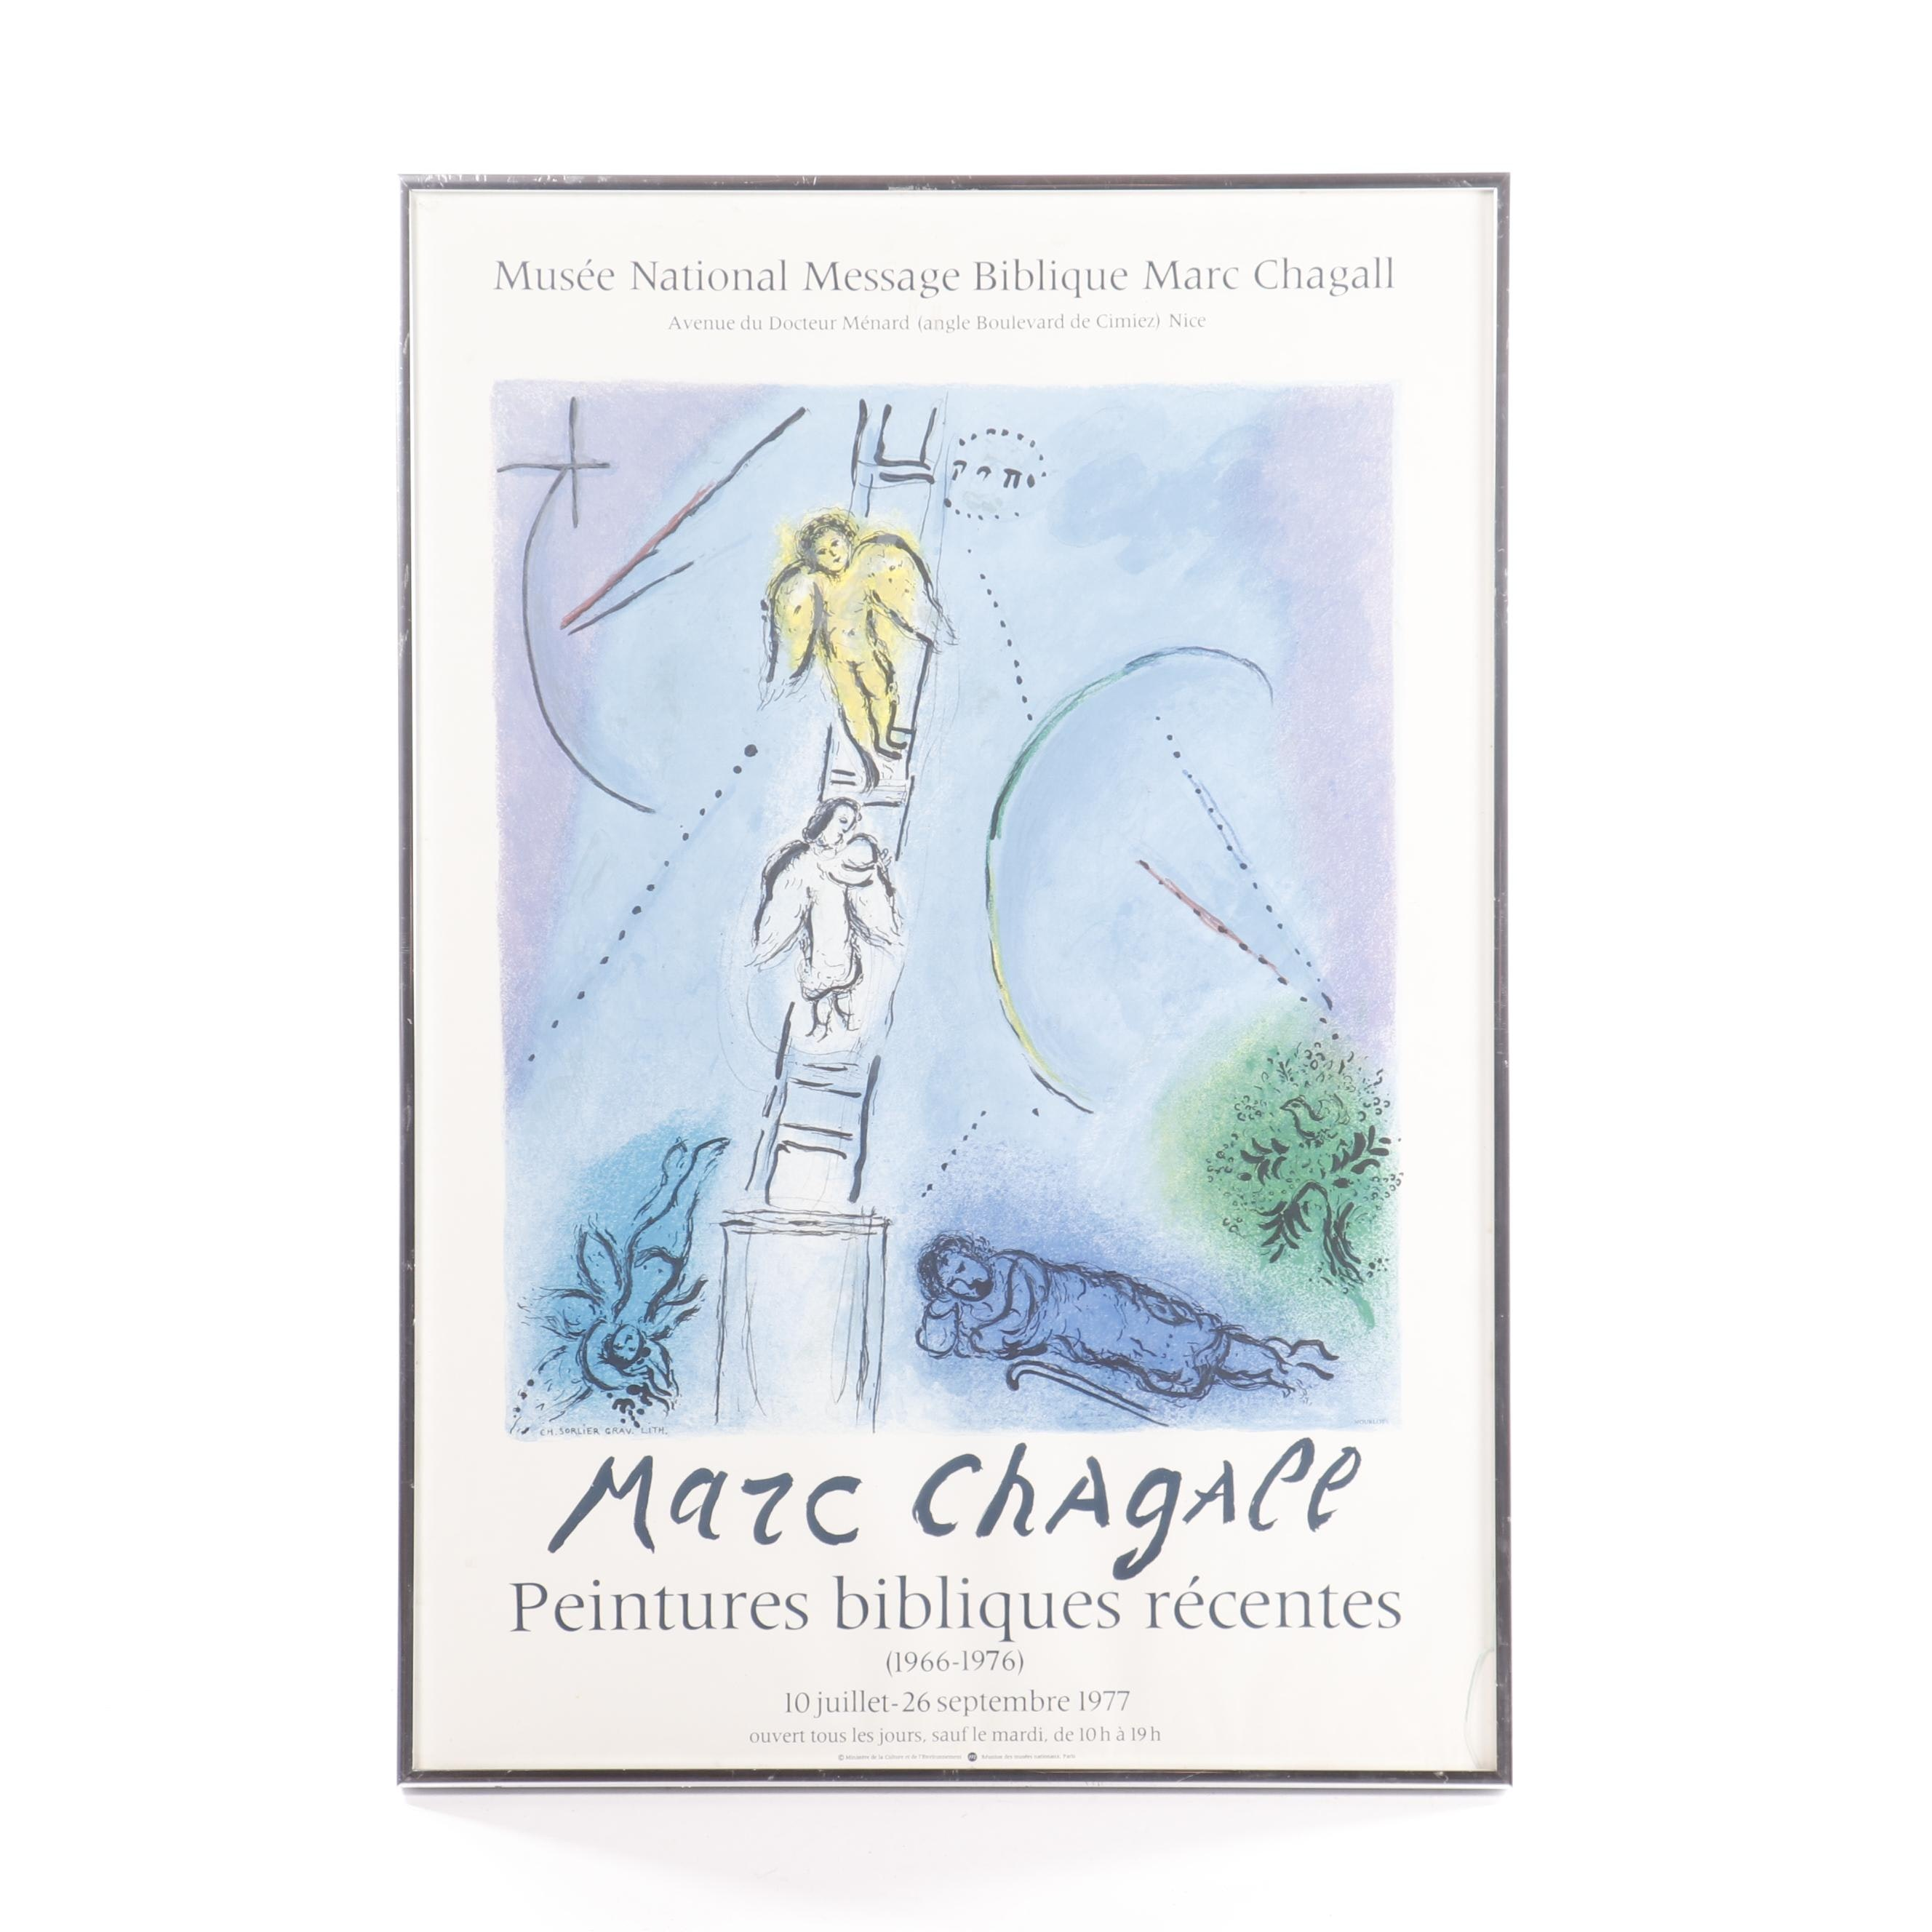 Framed Marc Chagall Exhibition Poster